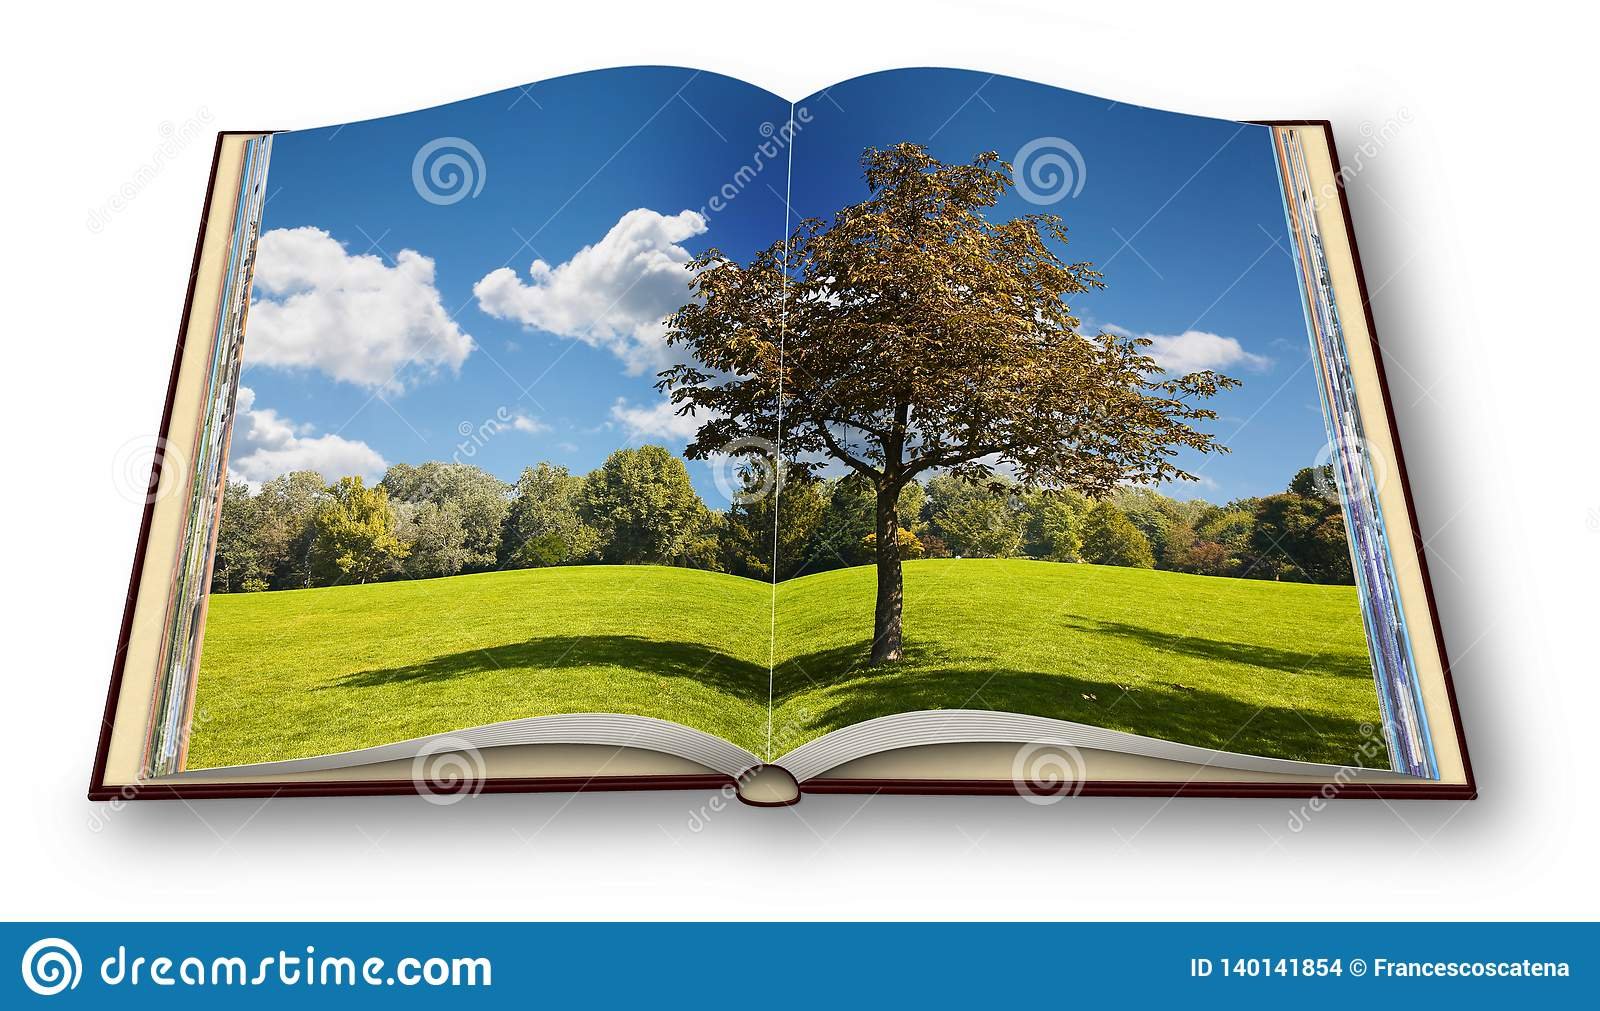 Isolated tree in a green meadow - Opened photobook on white background - I`m the copyright owner of the images used in this 3D